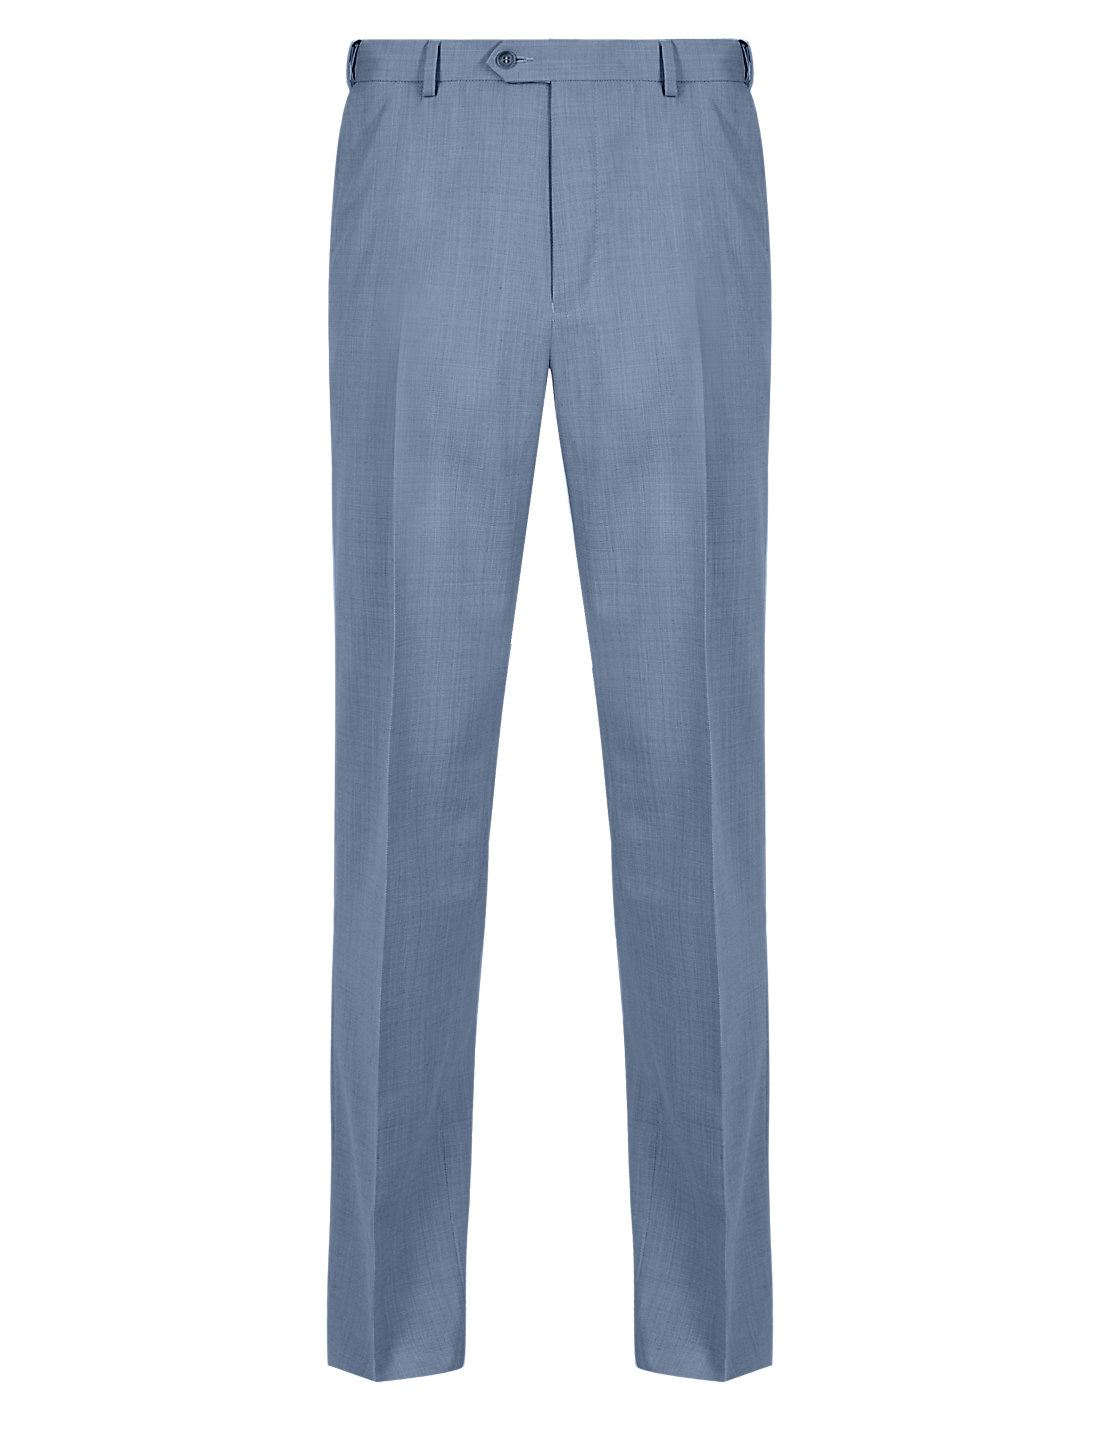 EX-M-amp-S-Marks-And-Spencer-Ultimate-Perfomance-Flat-Front-Trousers-With-Wool thumbnail 5